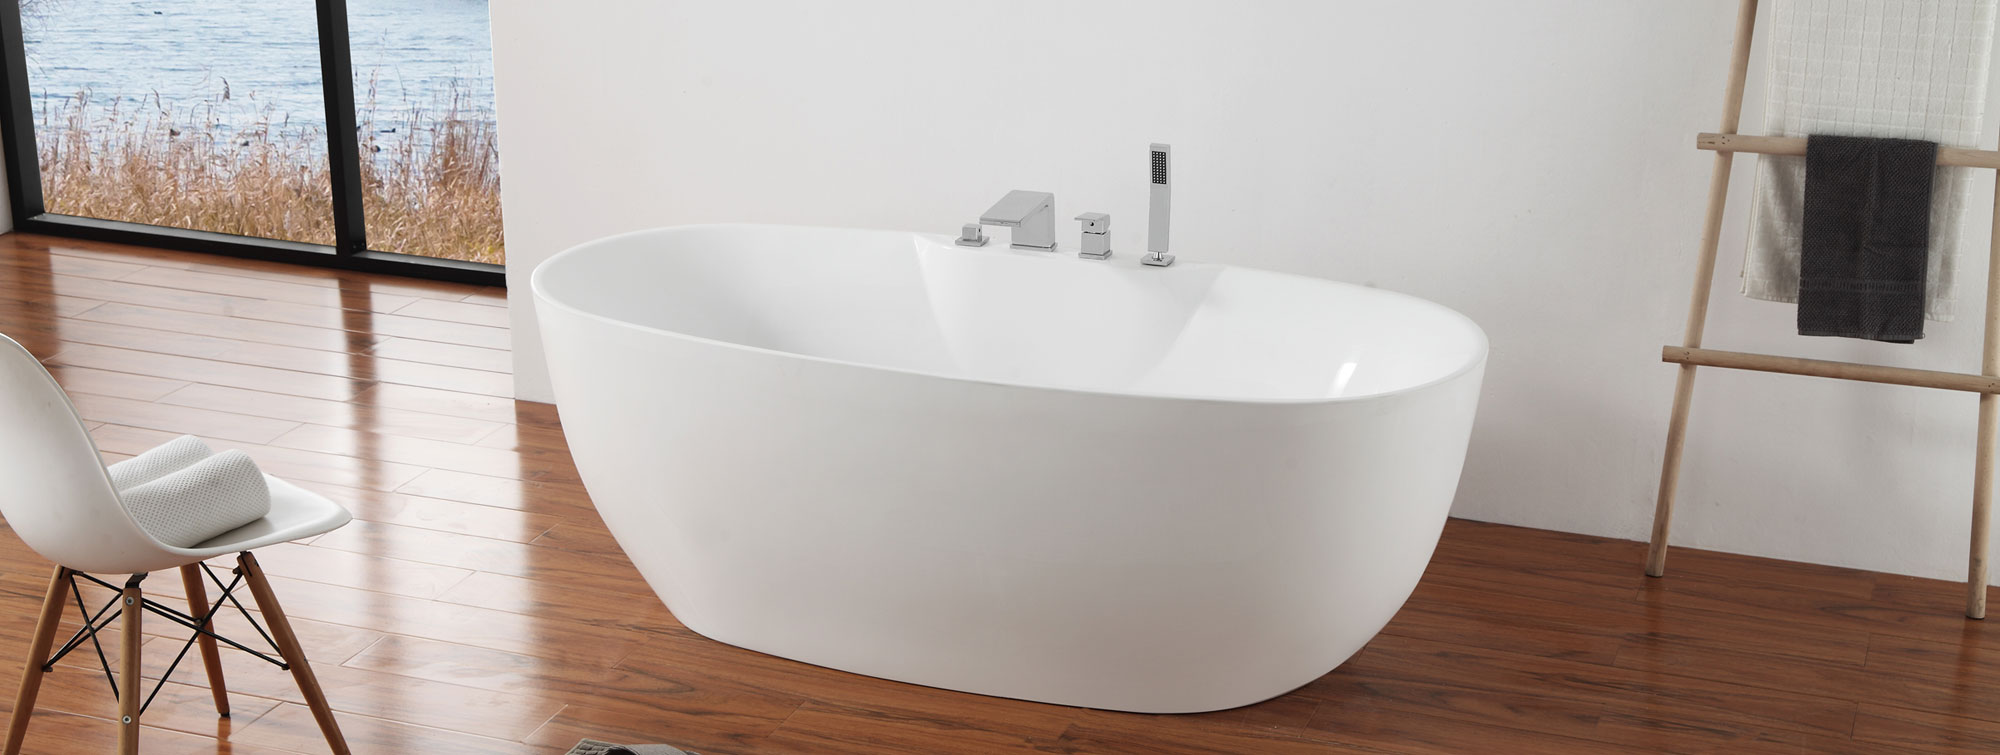 LOOKBath Flash Tub